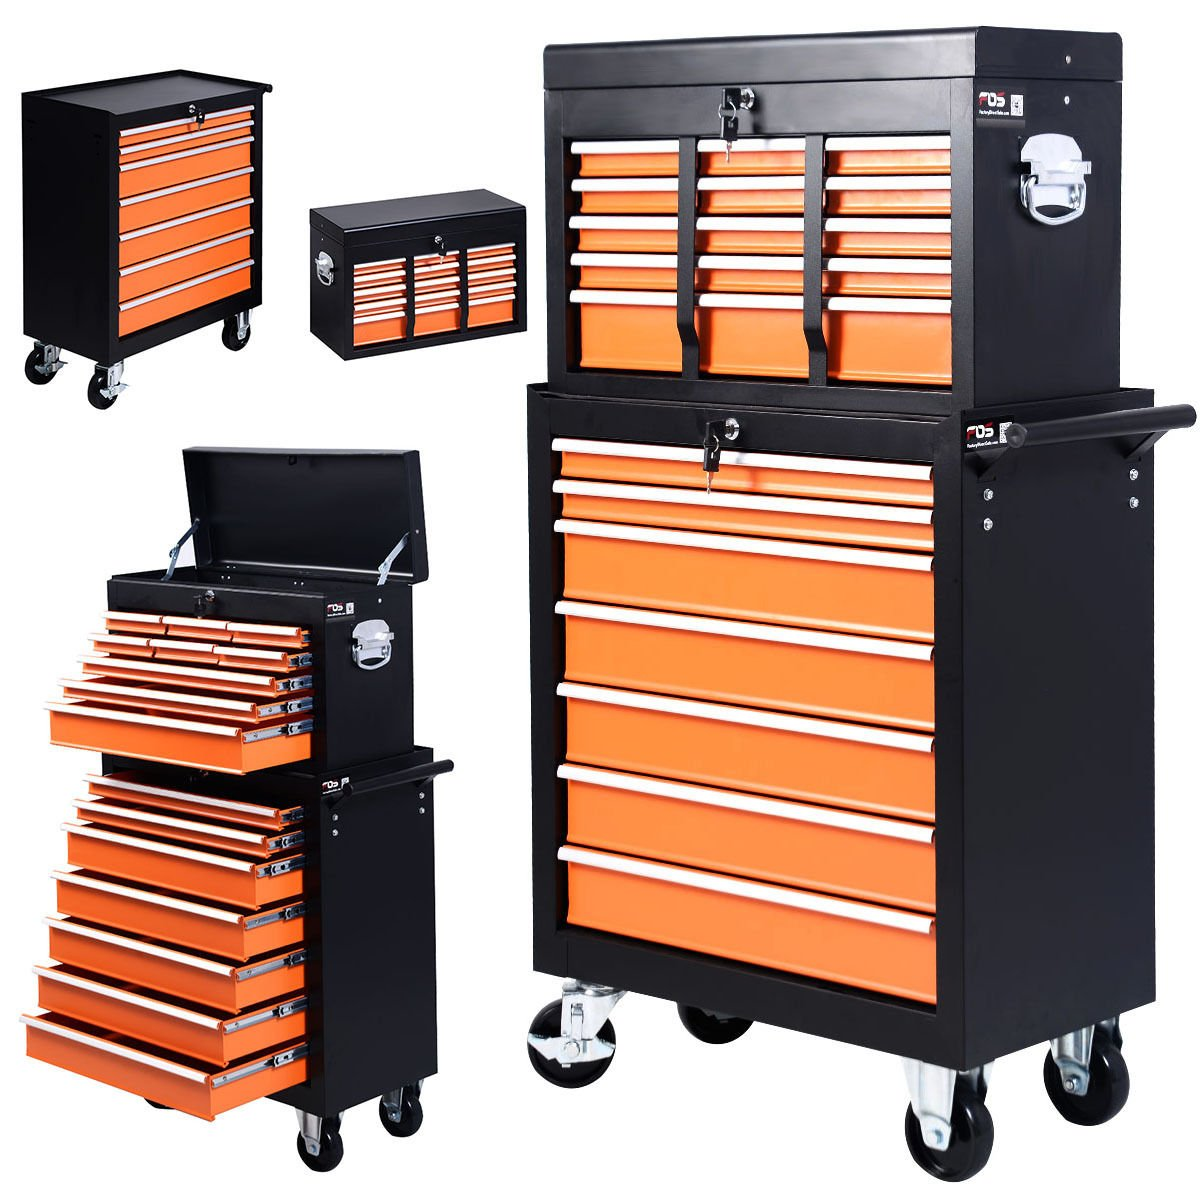 Portable 16 Drawers Tool Cart Top Chest Box Rolling Toolbox Cabinets Storage New /#B4G341TG 32W4-15RTH461775 by happybeamy